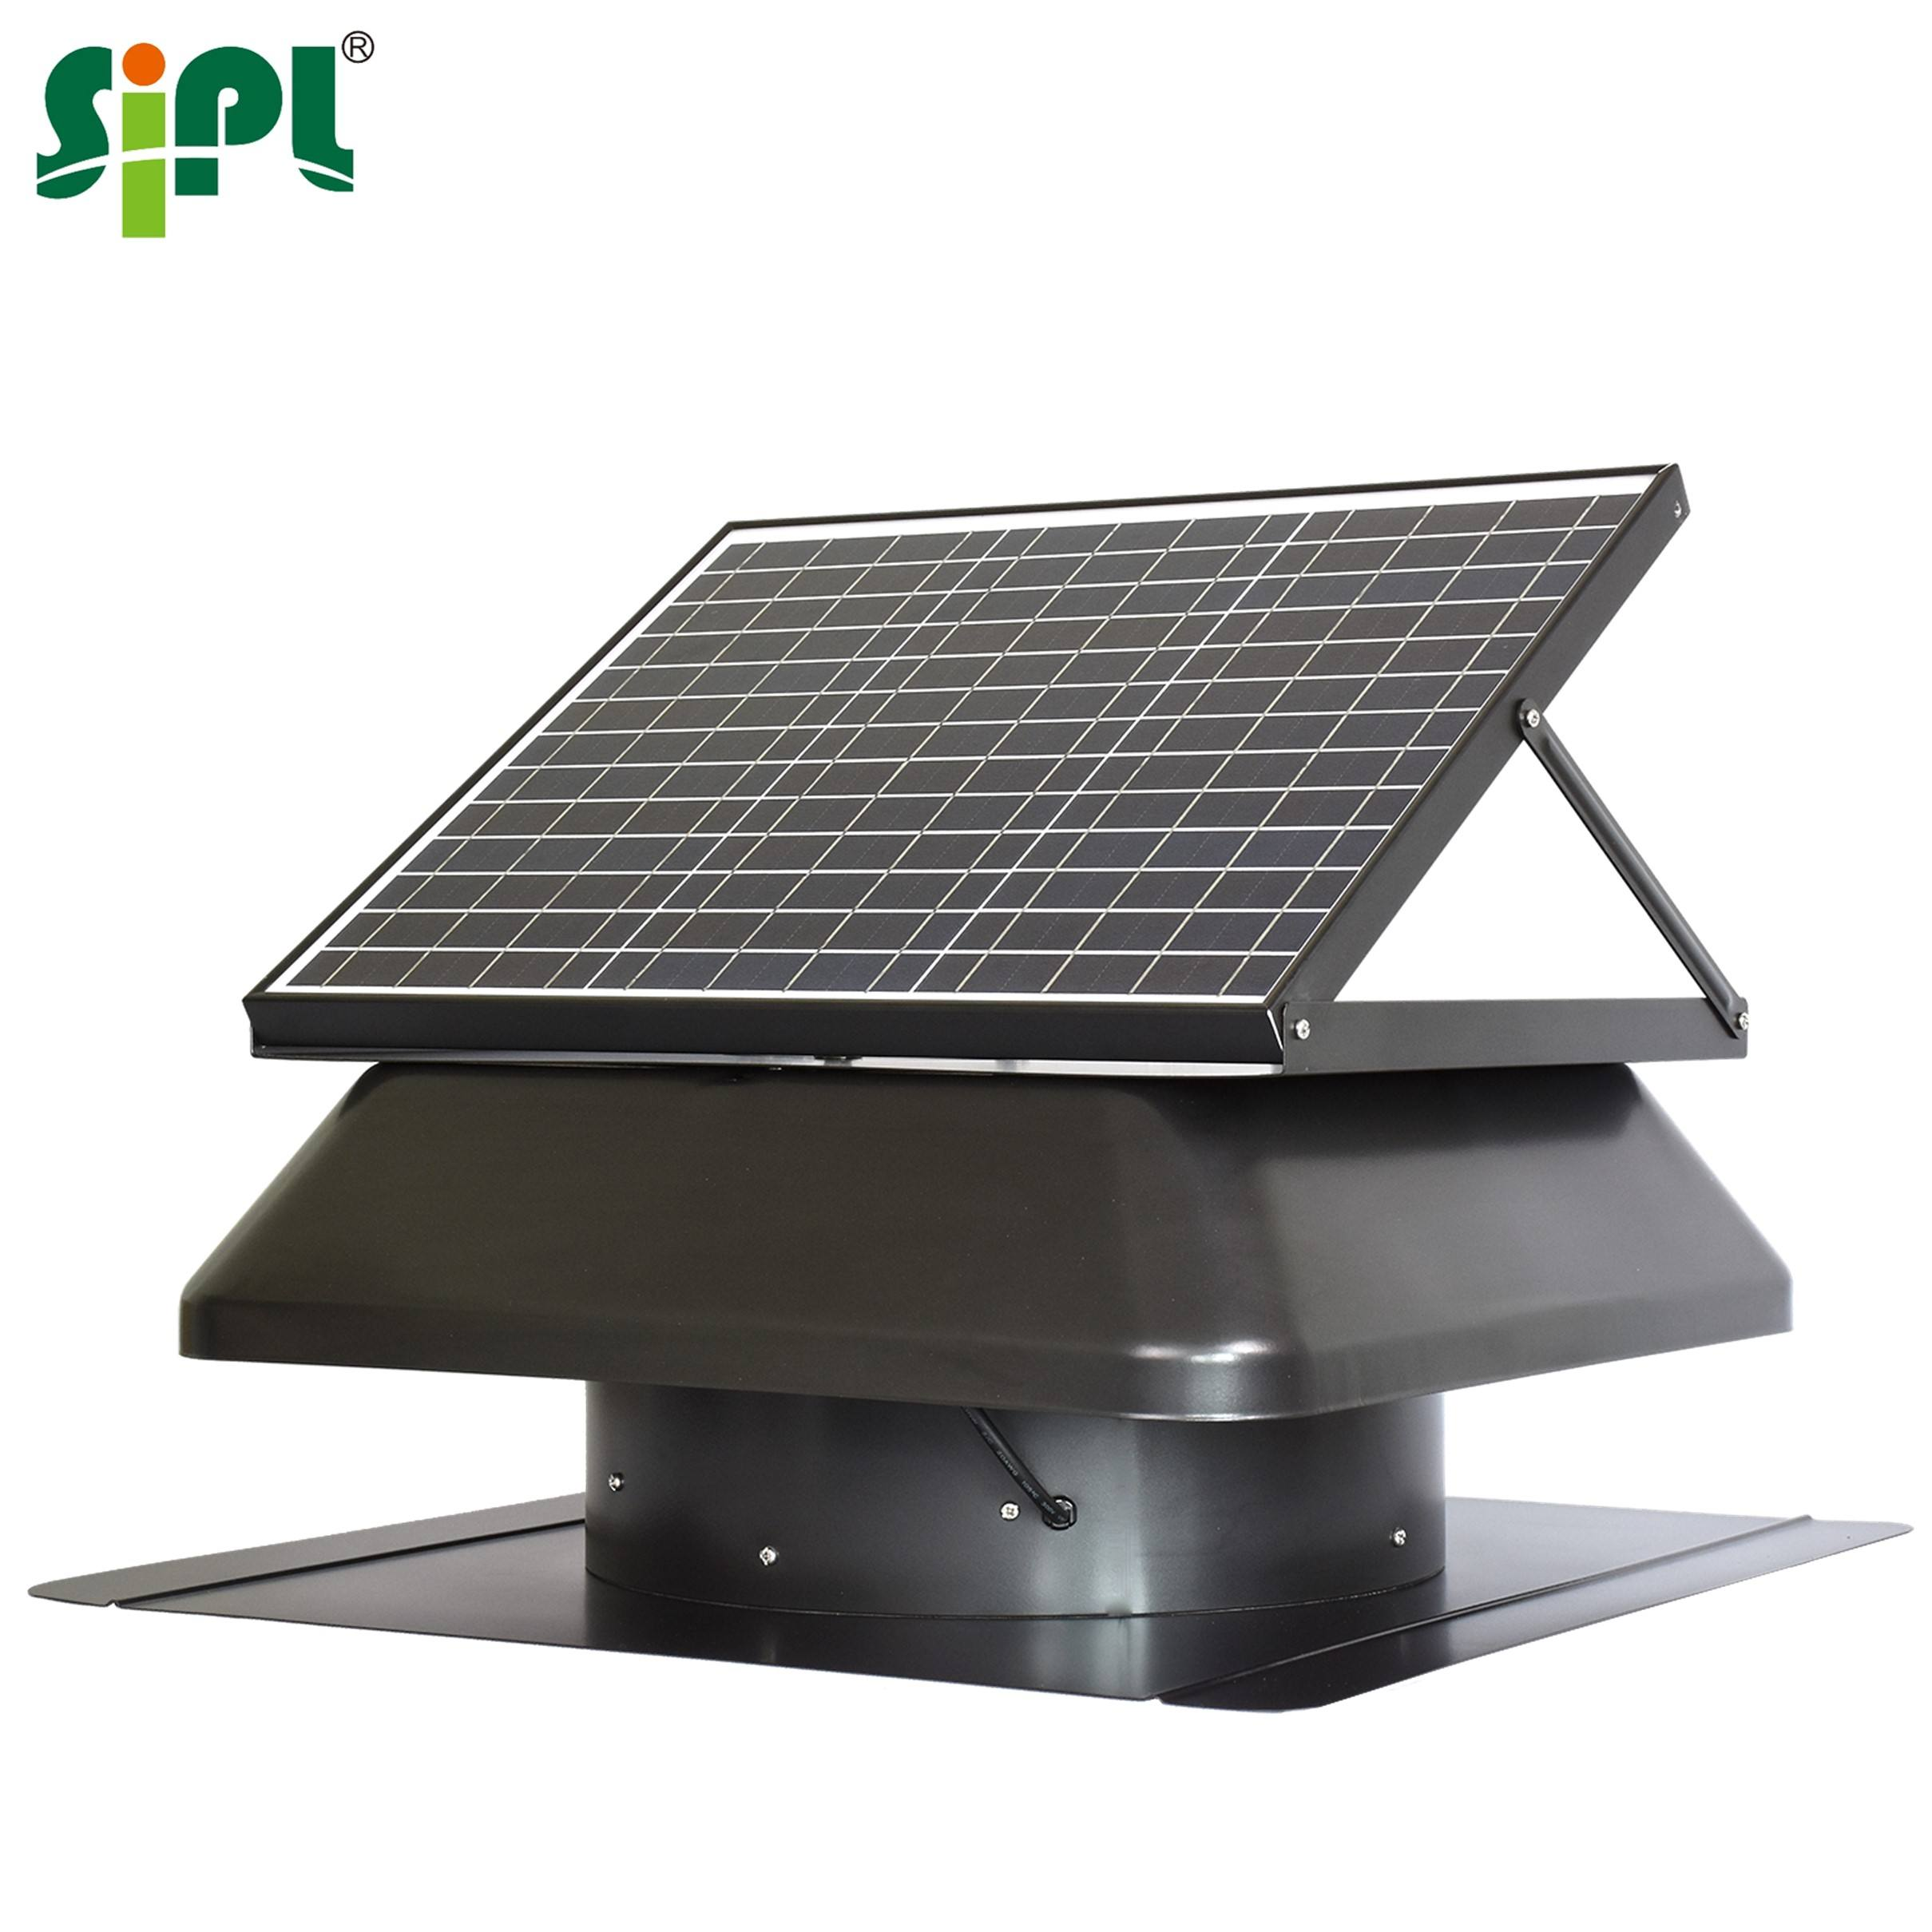 HVAC Roof Vent Tools 40W 14'' Solar Hybrid Power AC DC Exhaust <span class=keywords><strong>Fan</strong></span> Axial Flow <span class=keywords><strong>Fan</strong></span> 7-Blade Propeller Hot Air Solar Heat Extractor